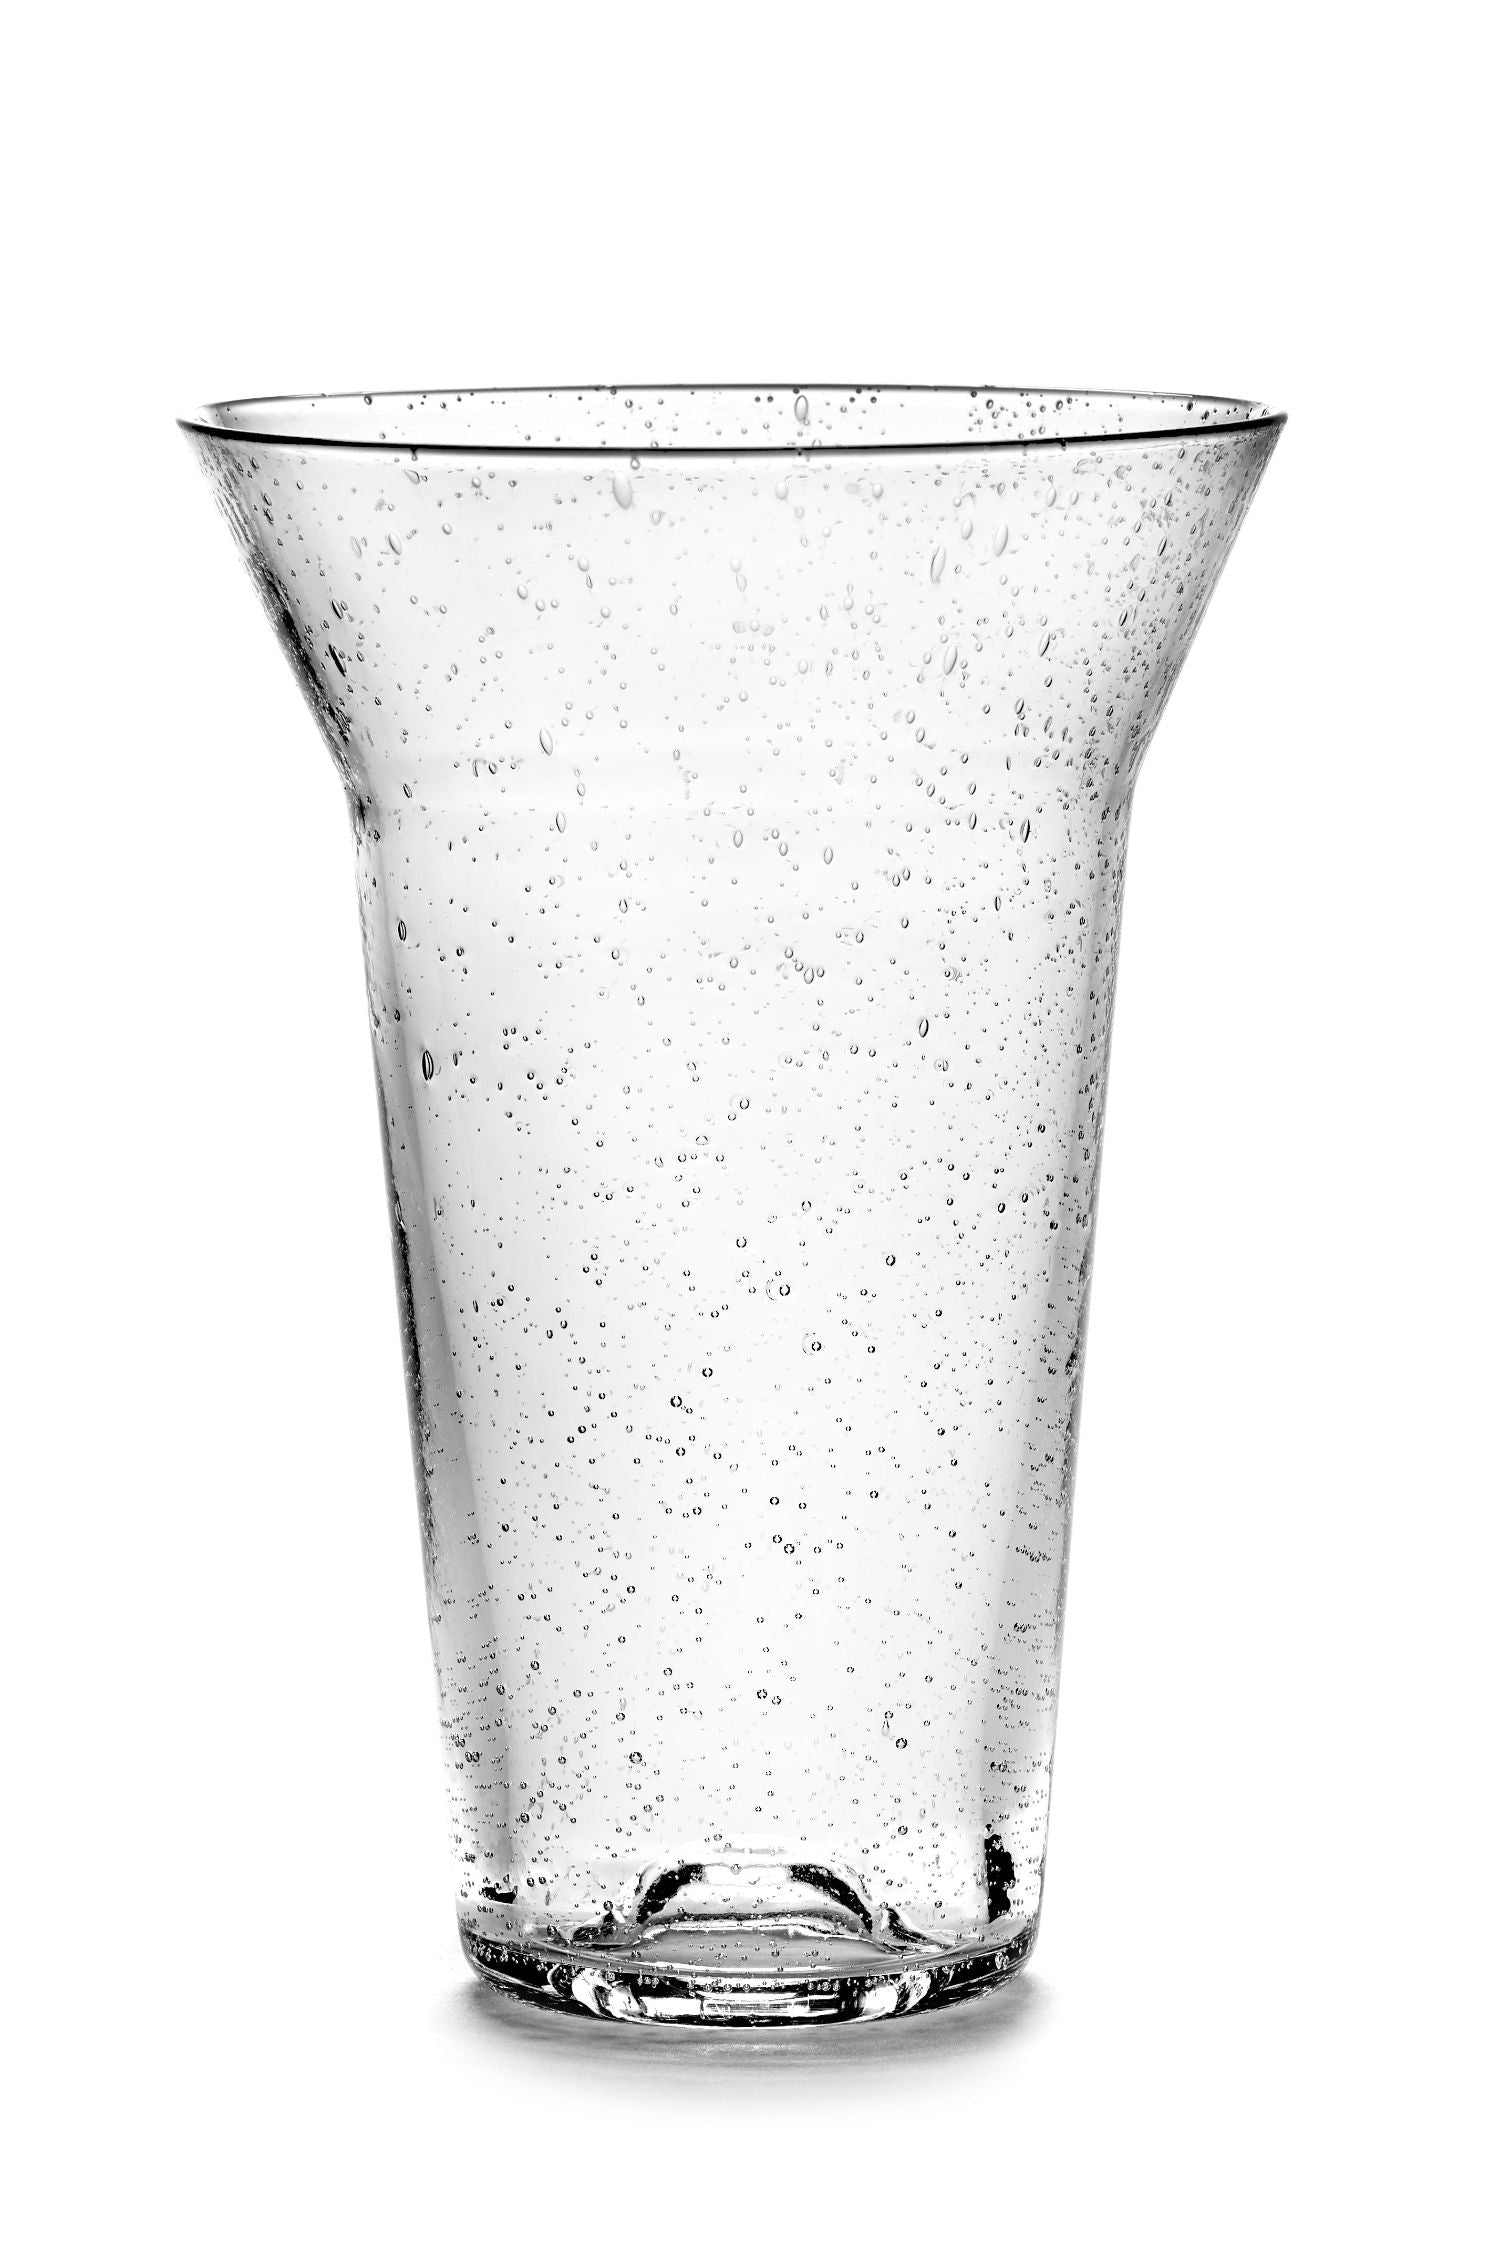 nomade glass L